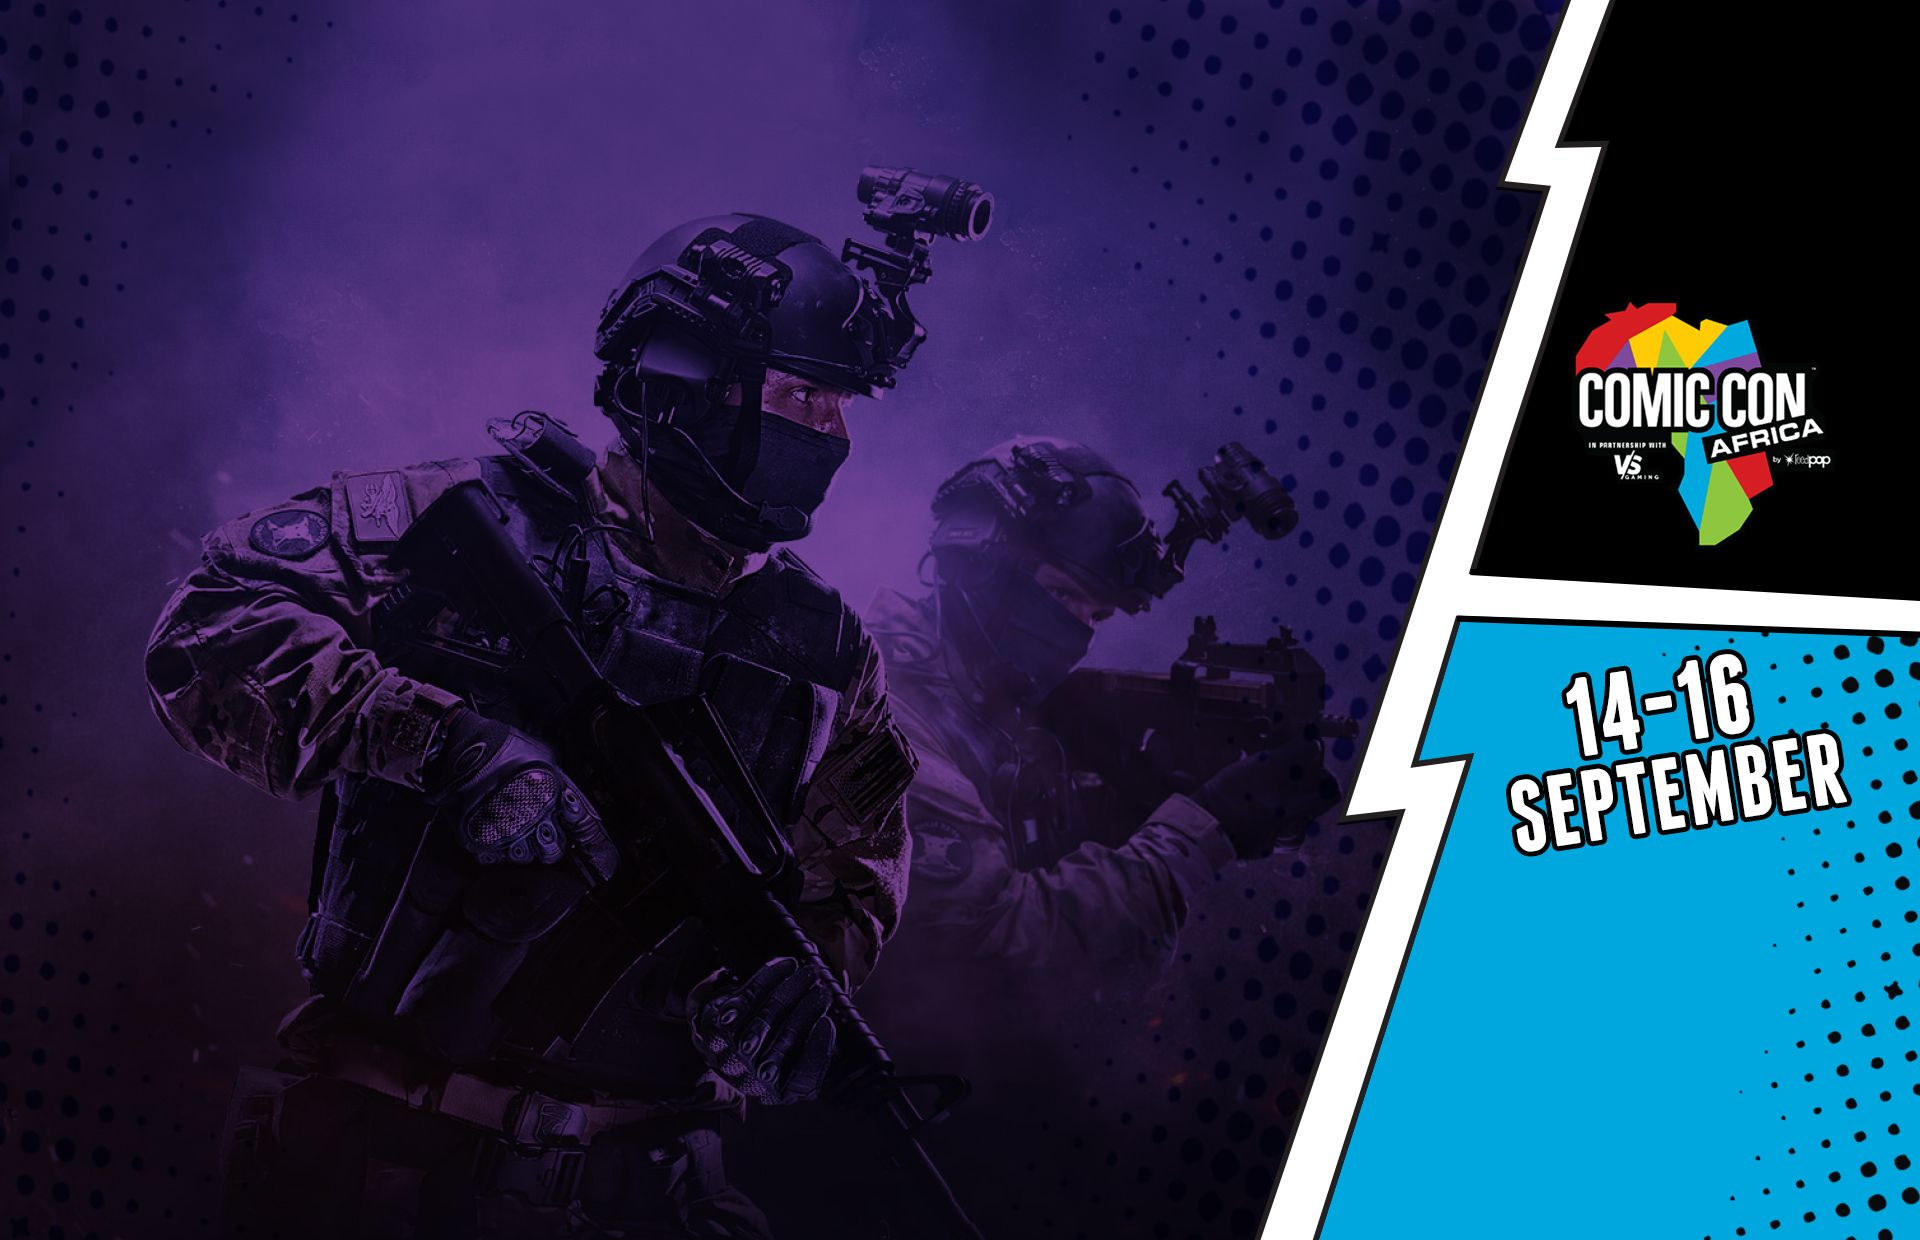 A newbies guide to CS:GO & Comic Con | VS Gaming